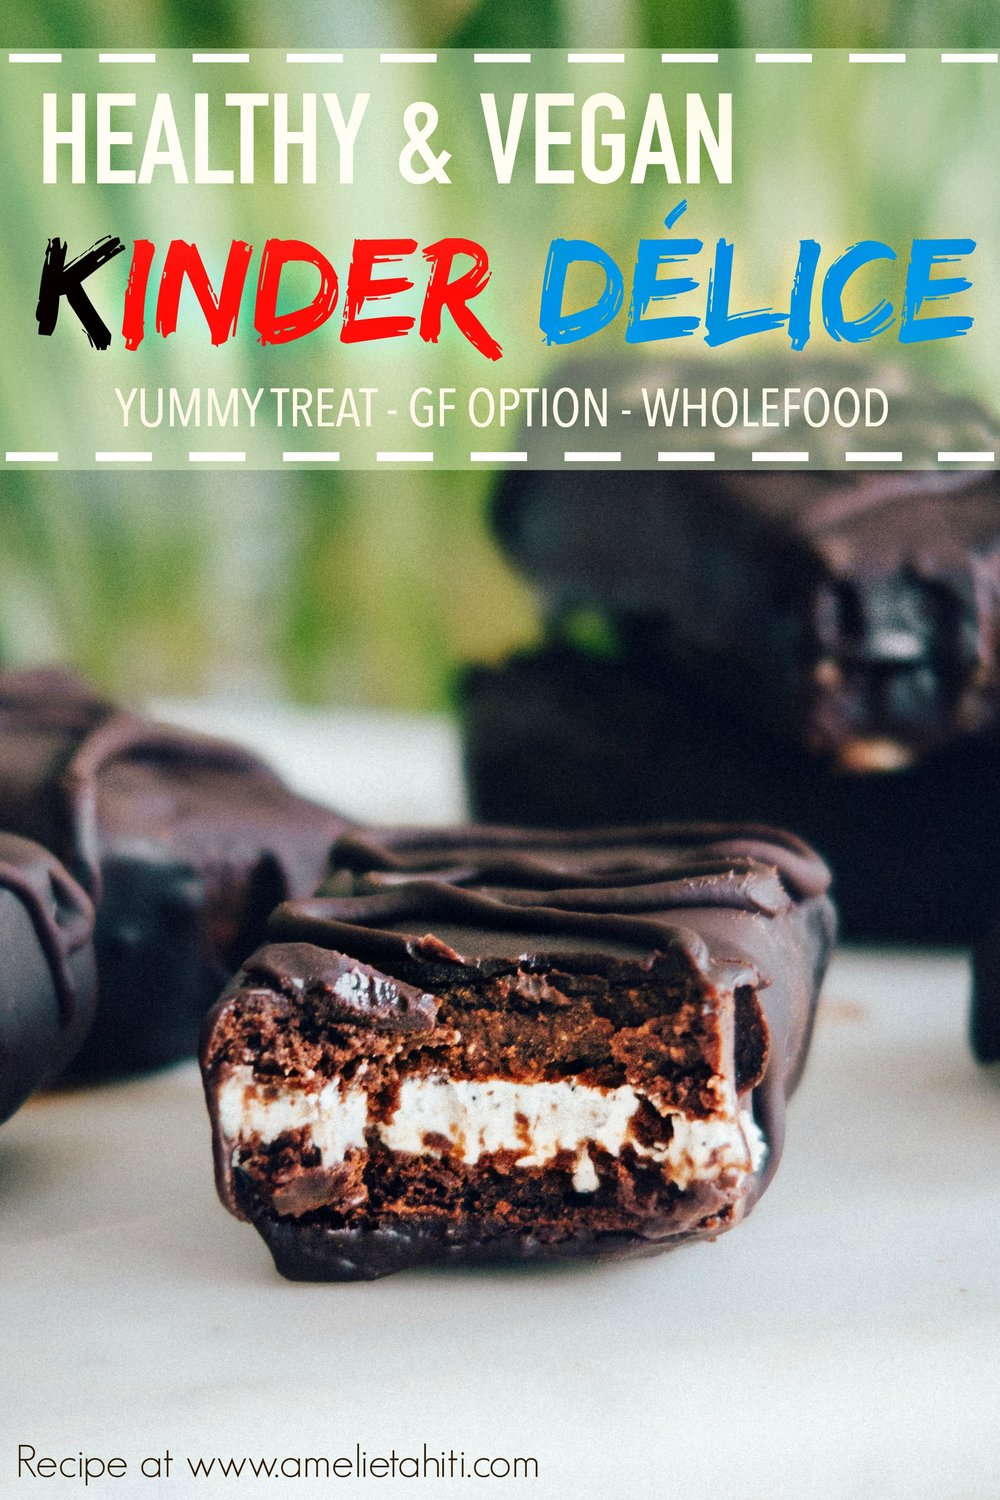 Vegan Kinder Délice - Healthy & Wholefoods (Recipe at www.amelietahiti.com)